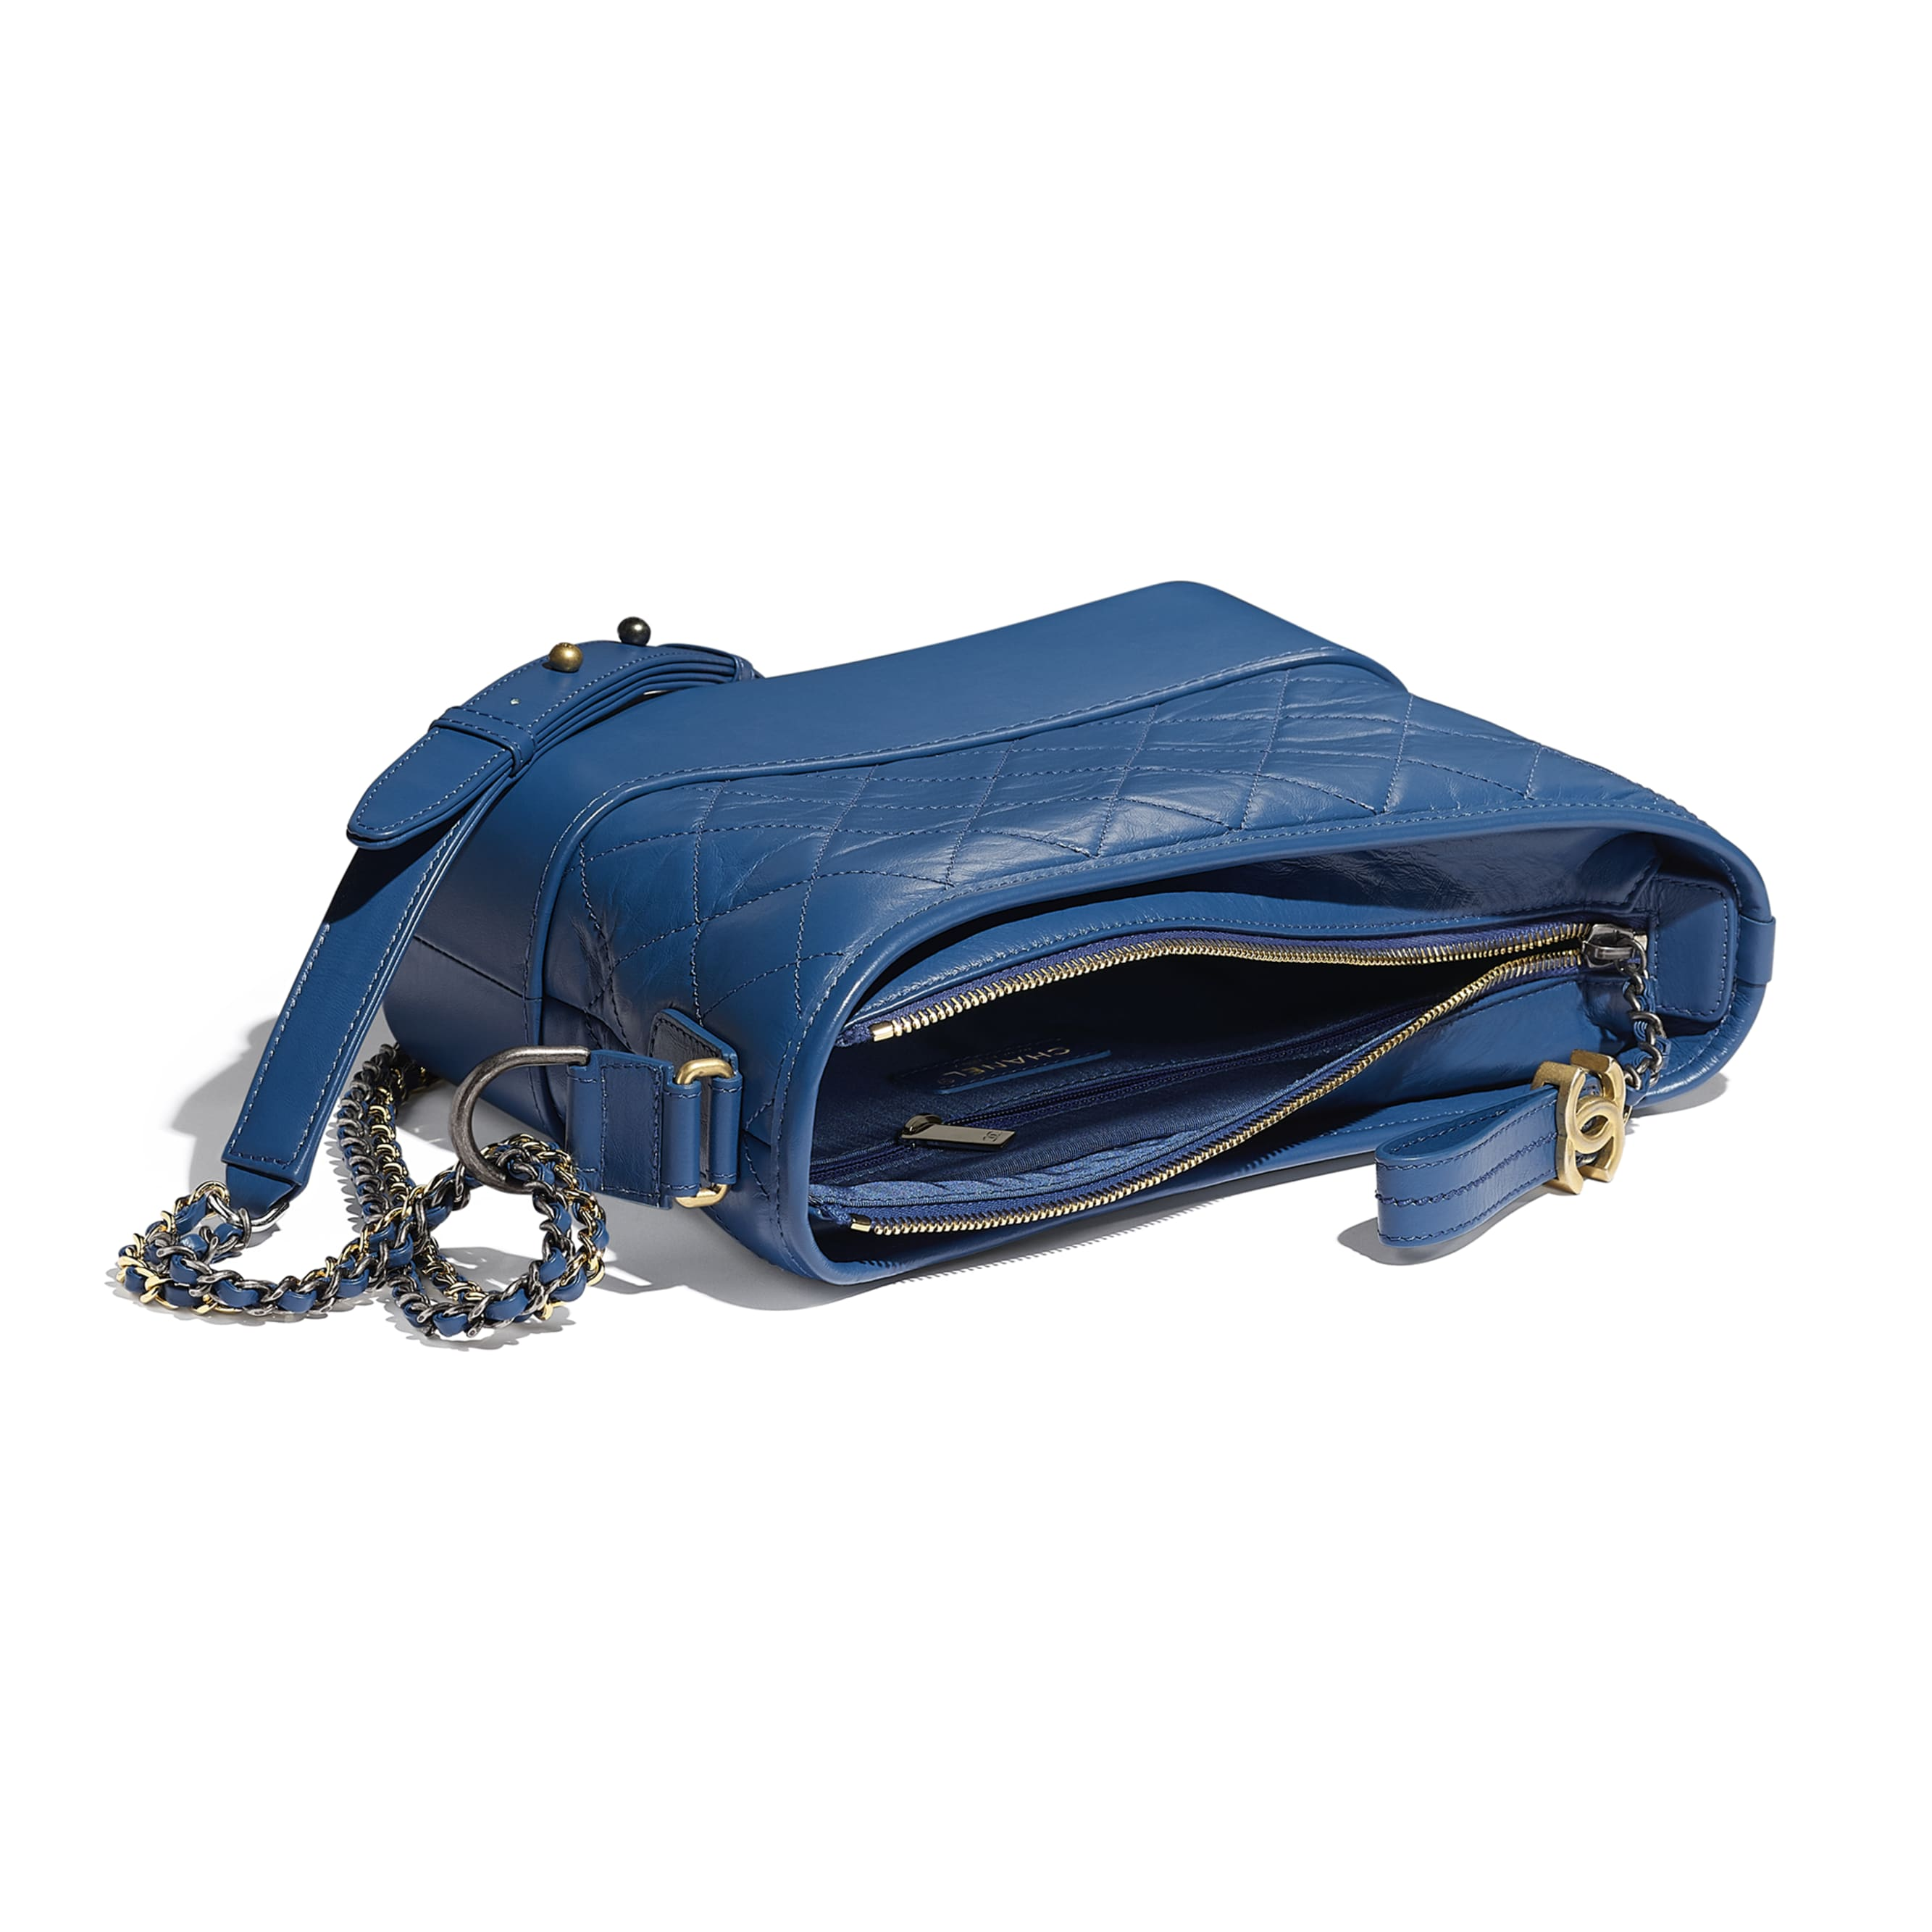 CHANEL'S GABRIELLE Hobo Handbag - Dark Blue - Aged Calfskin, Smooth Calfskin, Silver-Tone & Gold-Tone Metal - Other view - see standard sized version